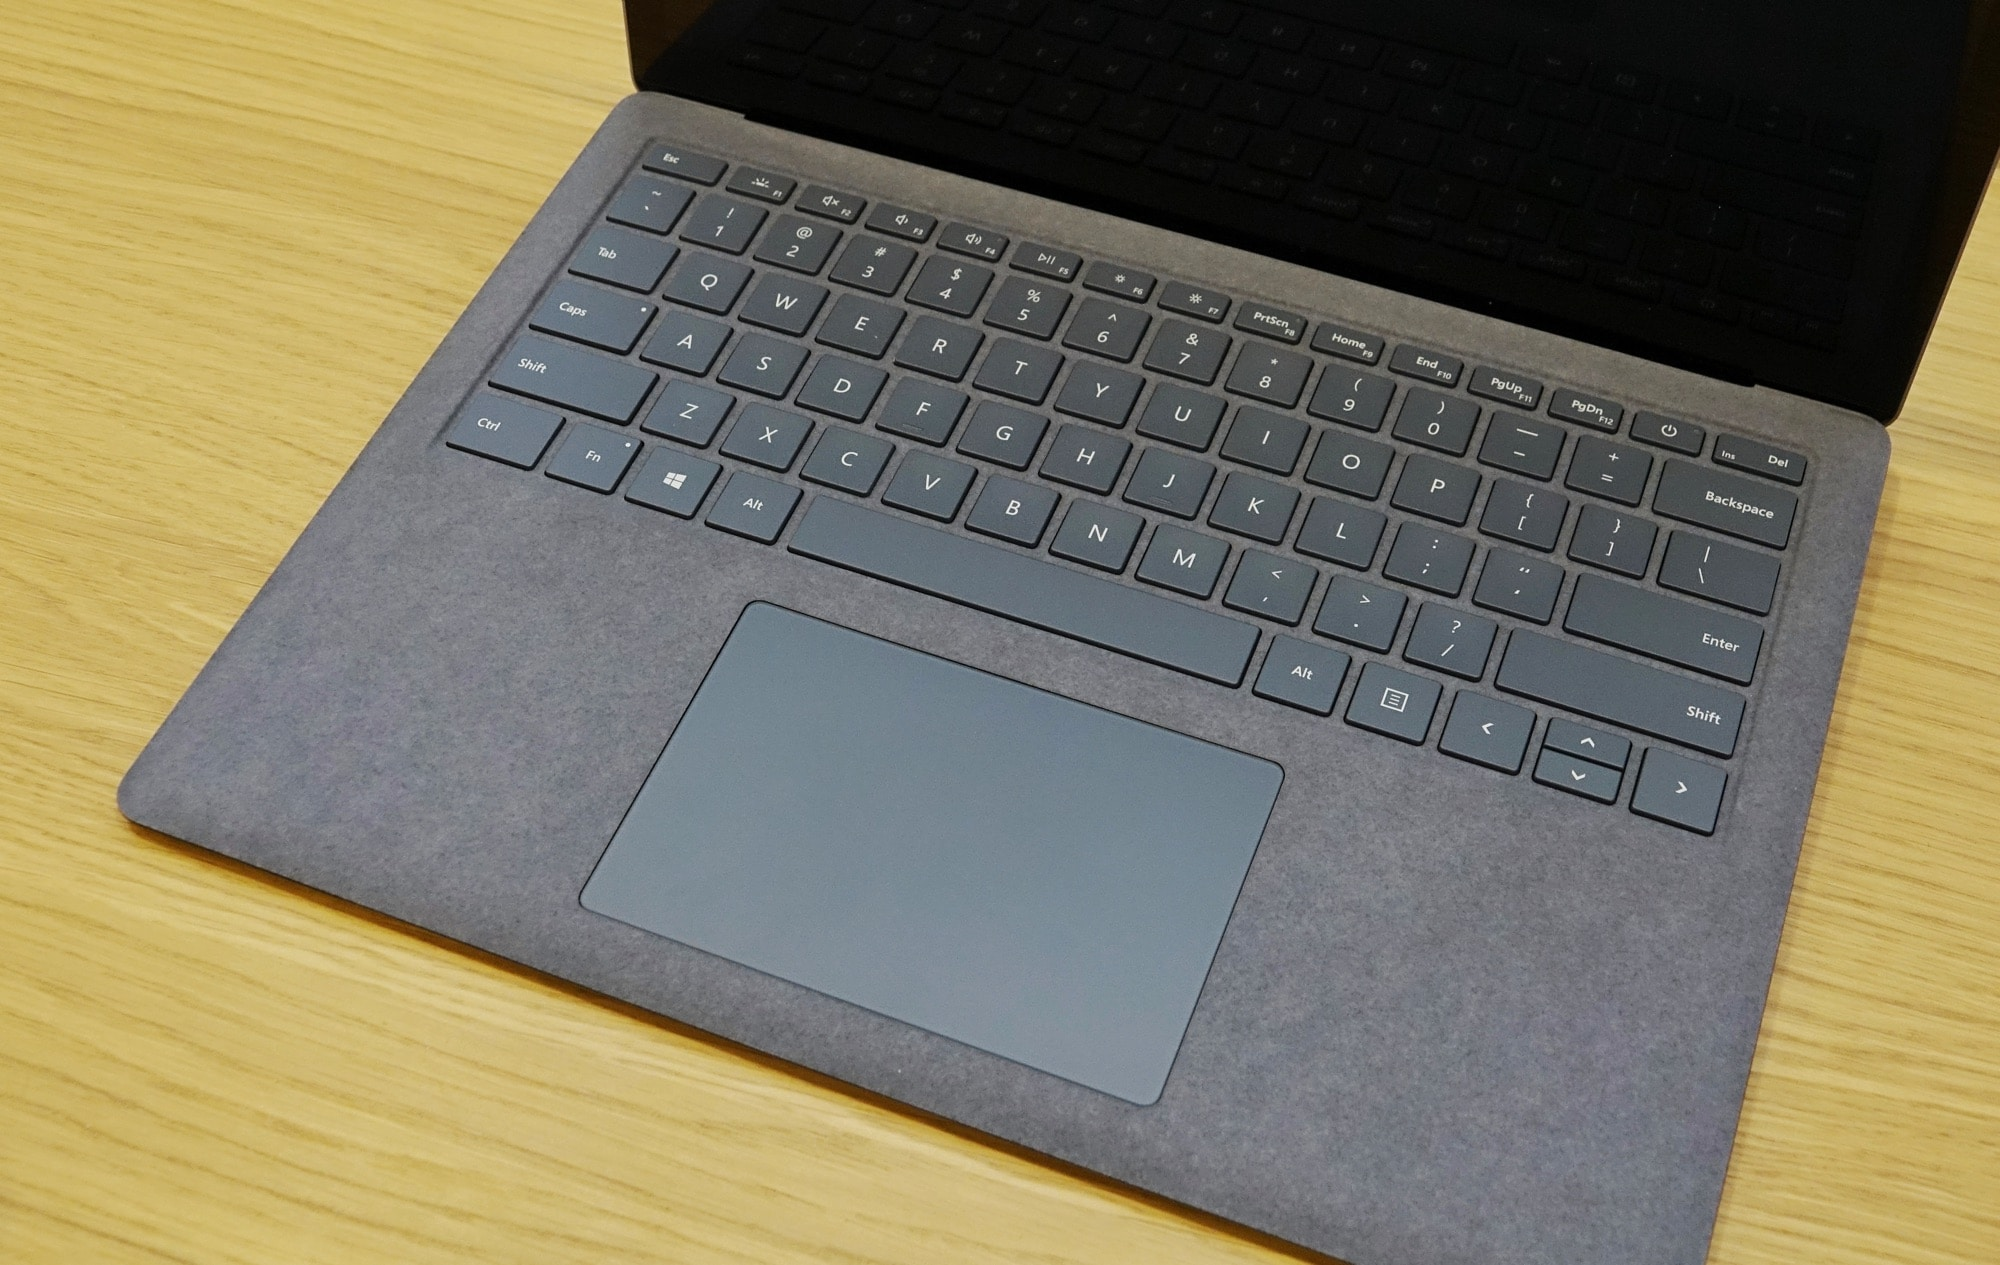 The fuzzy keyboard of the Surface Laptop 4.